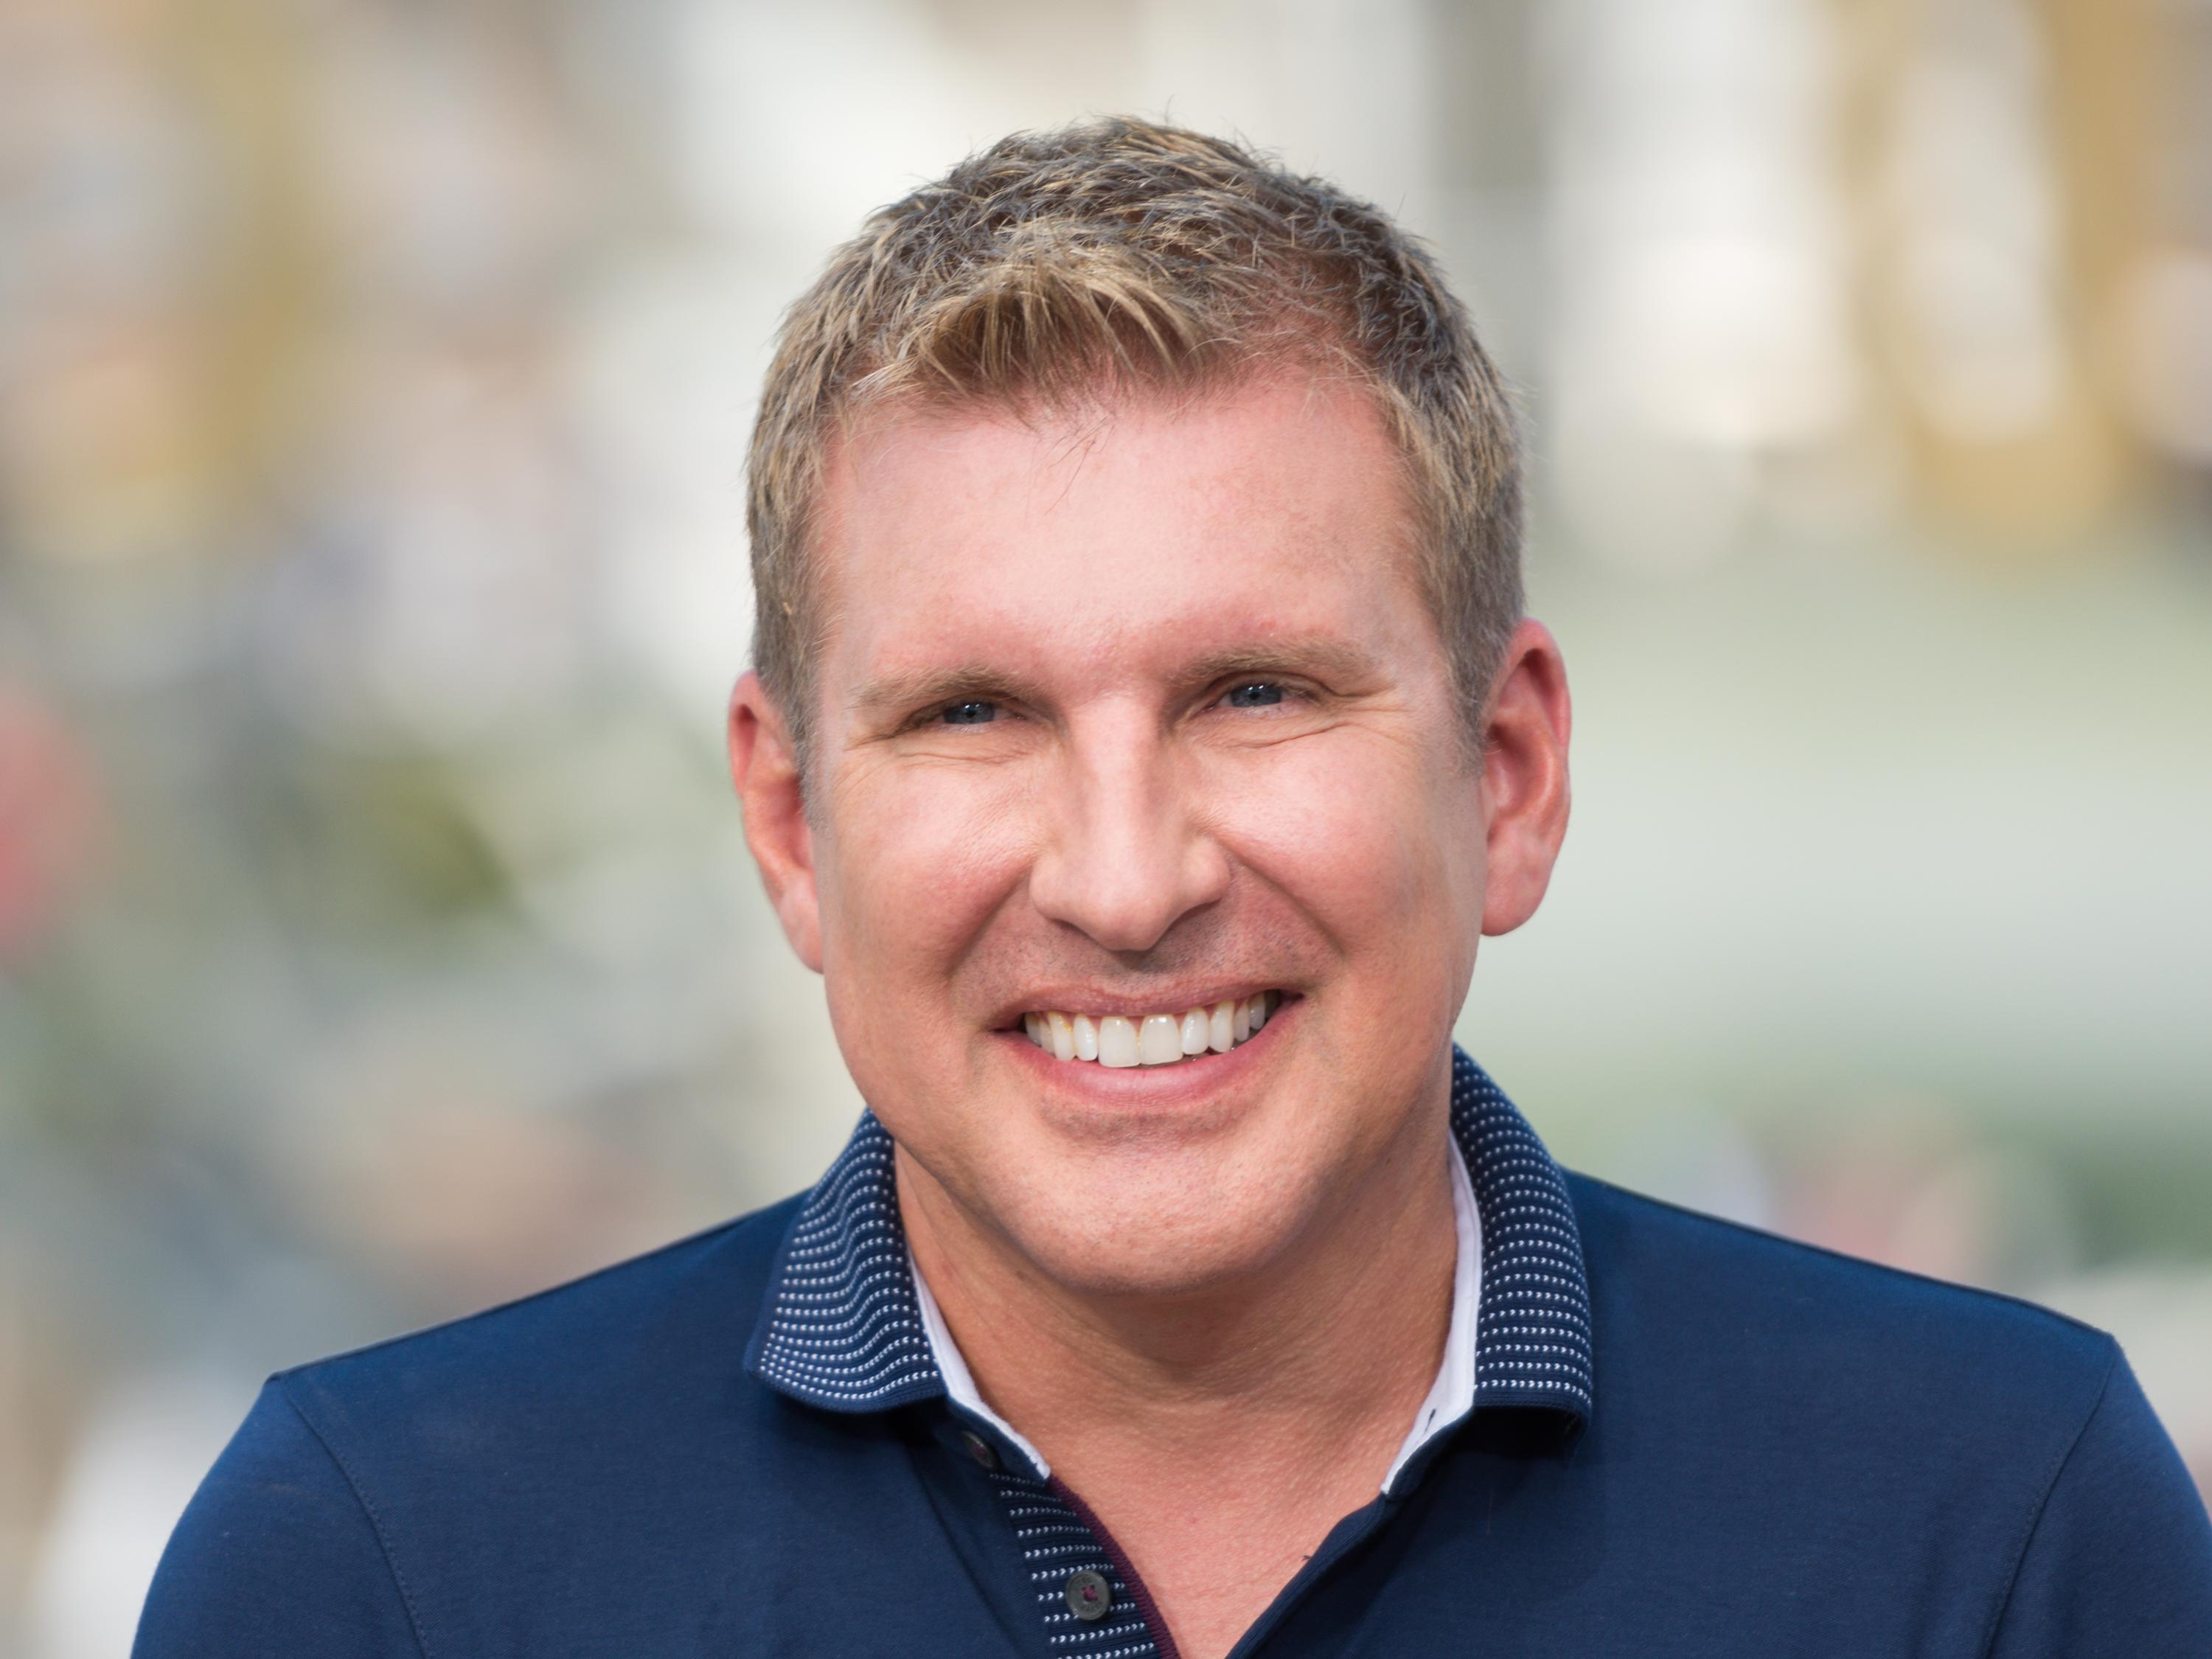 Todd Chrisley addresses tax evasion allegations on podcast: 'My ex-wife played a part in some of this'